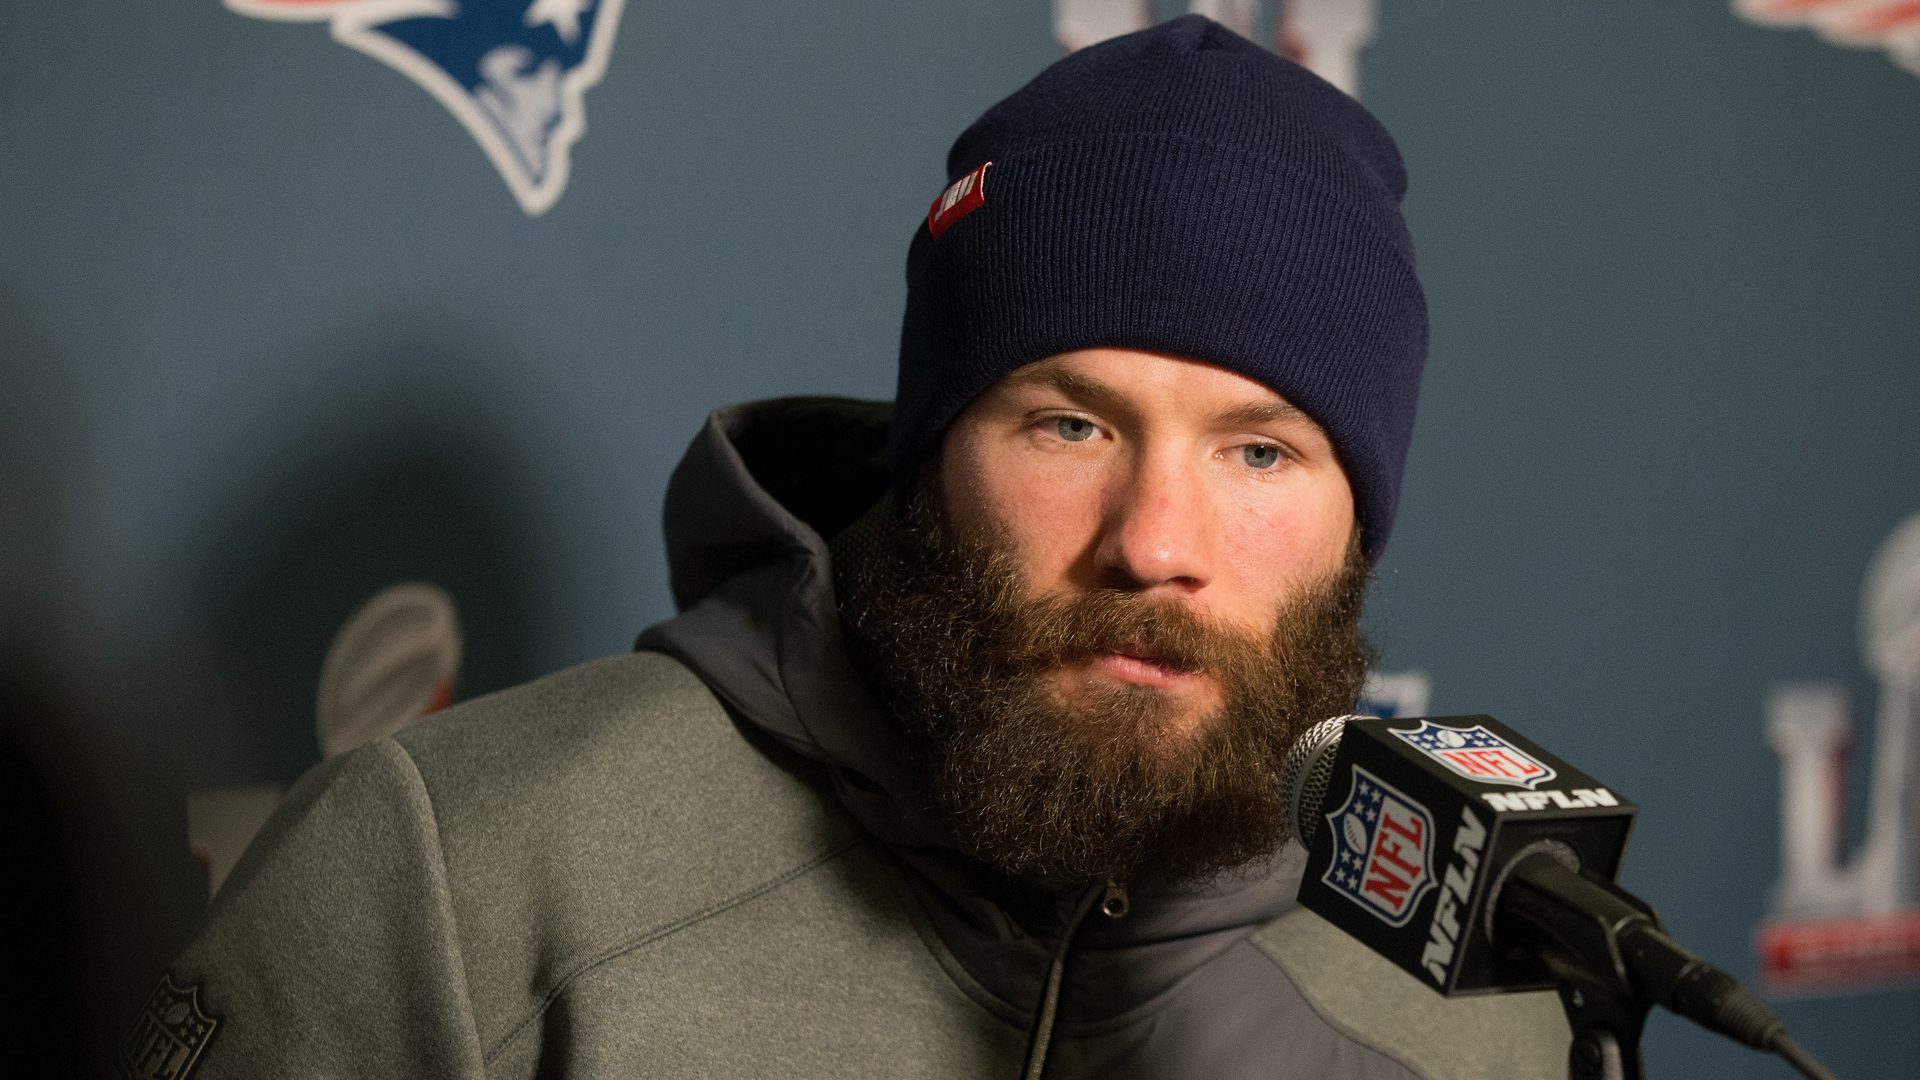 Julian Edelman of the New England Patriots answers questions during Super Bowl LI media availability at the J.W. Marriott on January 31, 2017 in Houston, Texas. (Credit: Bob Levey/Getty Images)